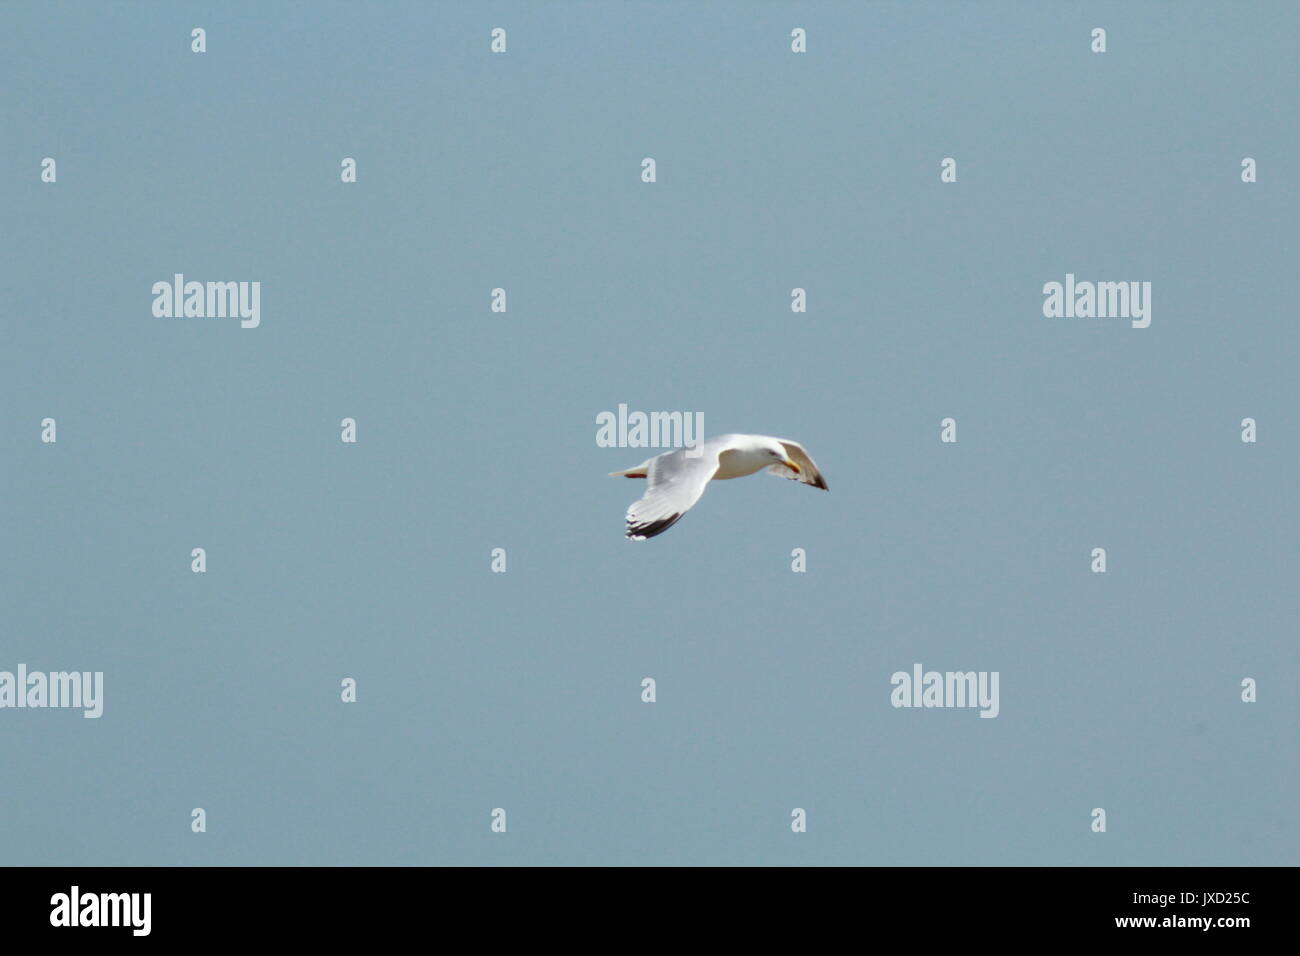 Seagull flying in the clear blue sky by the coast - Stock Image